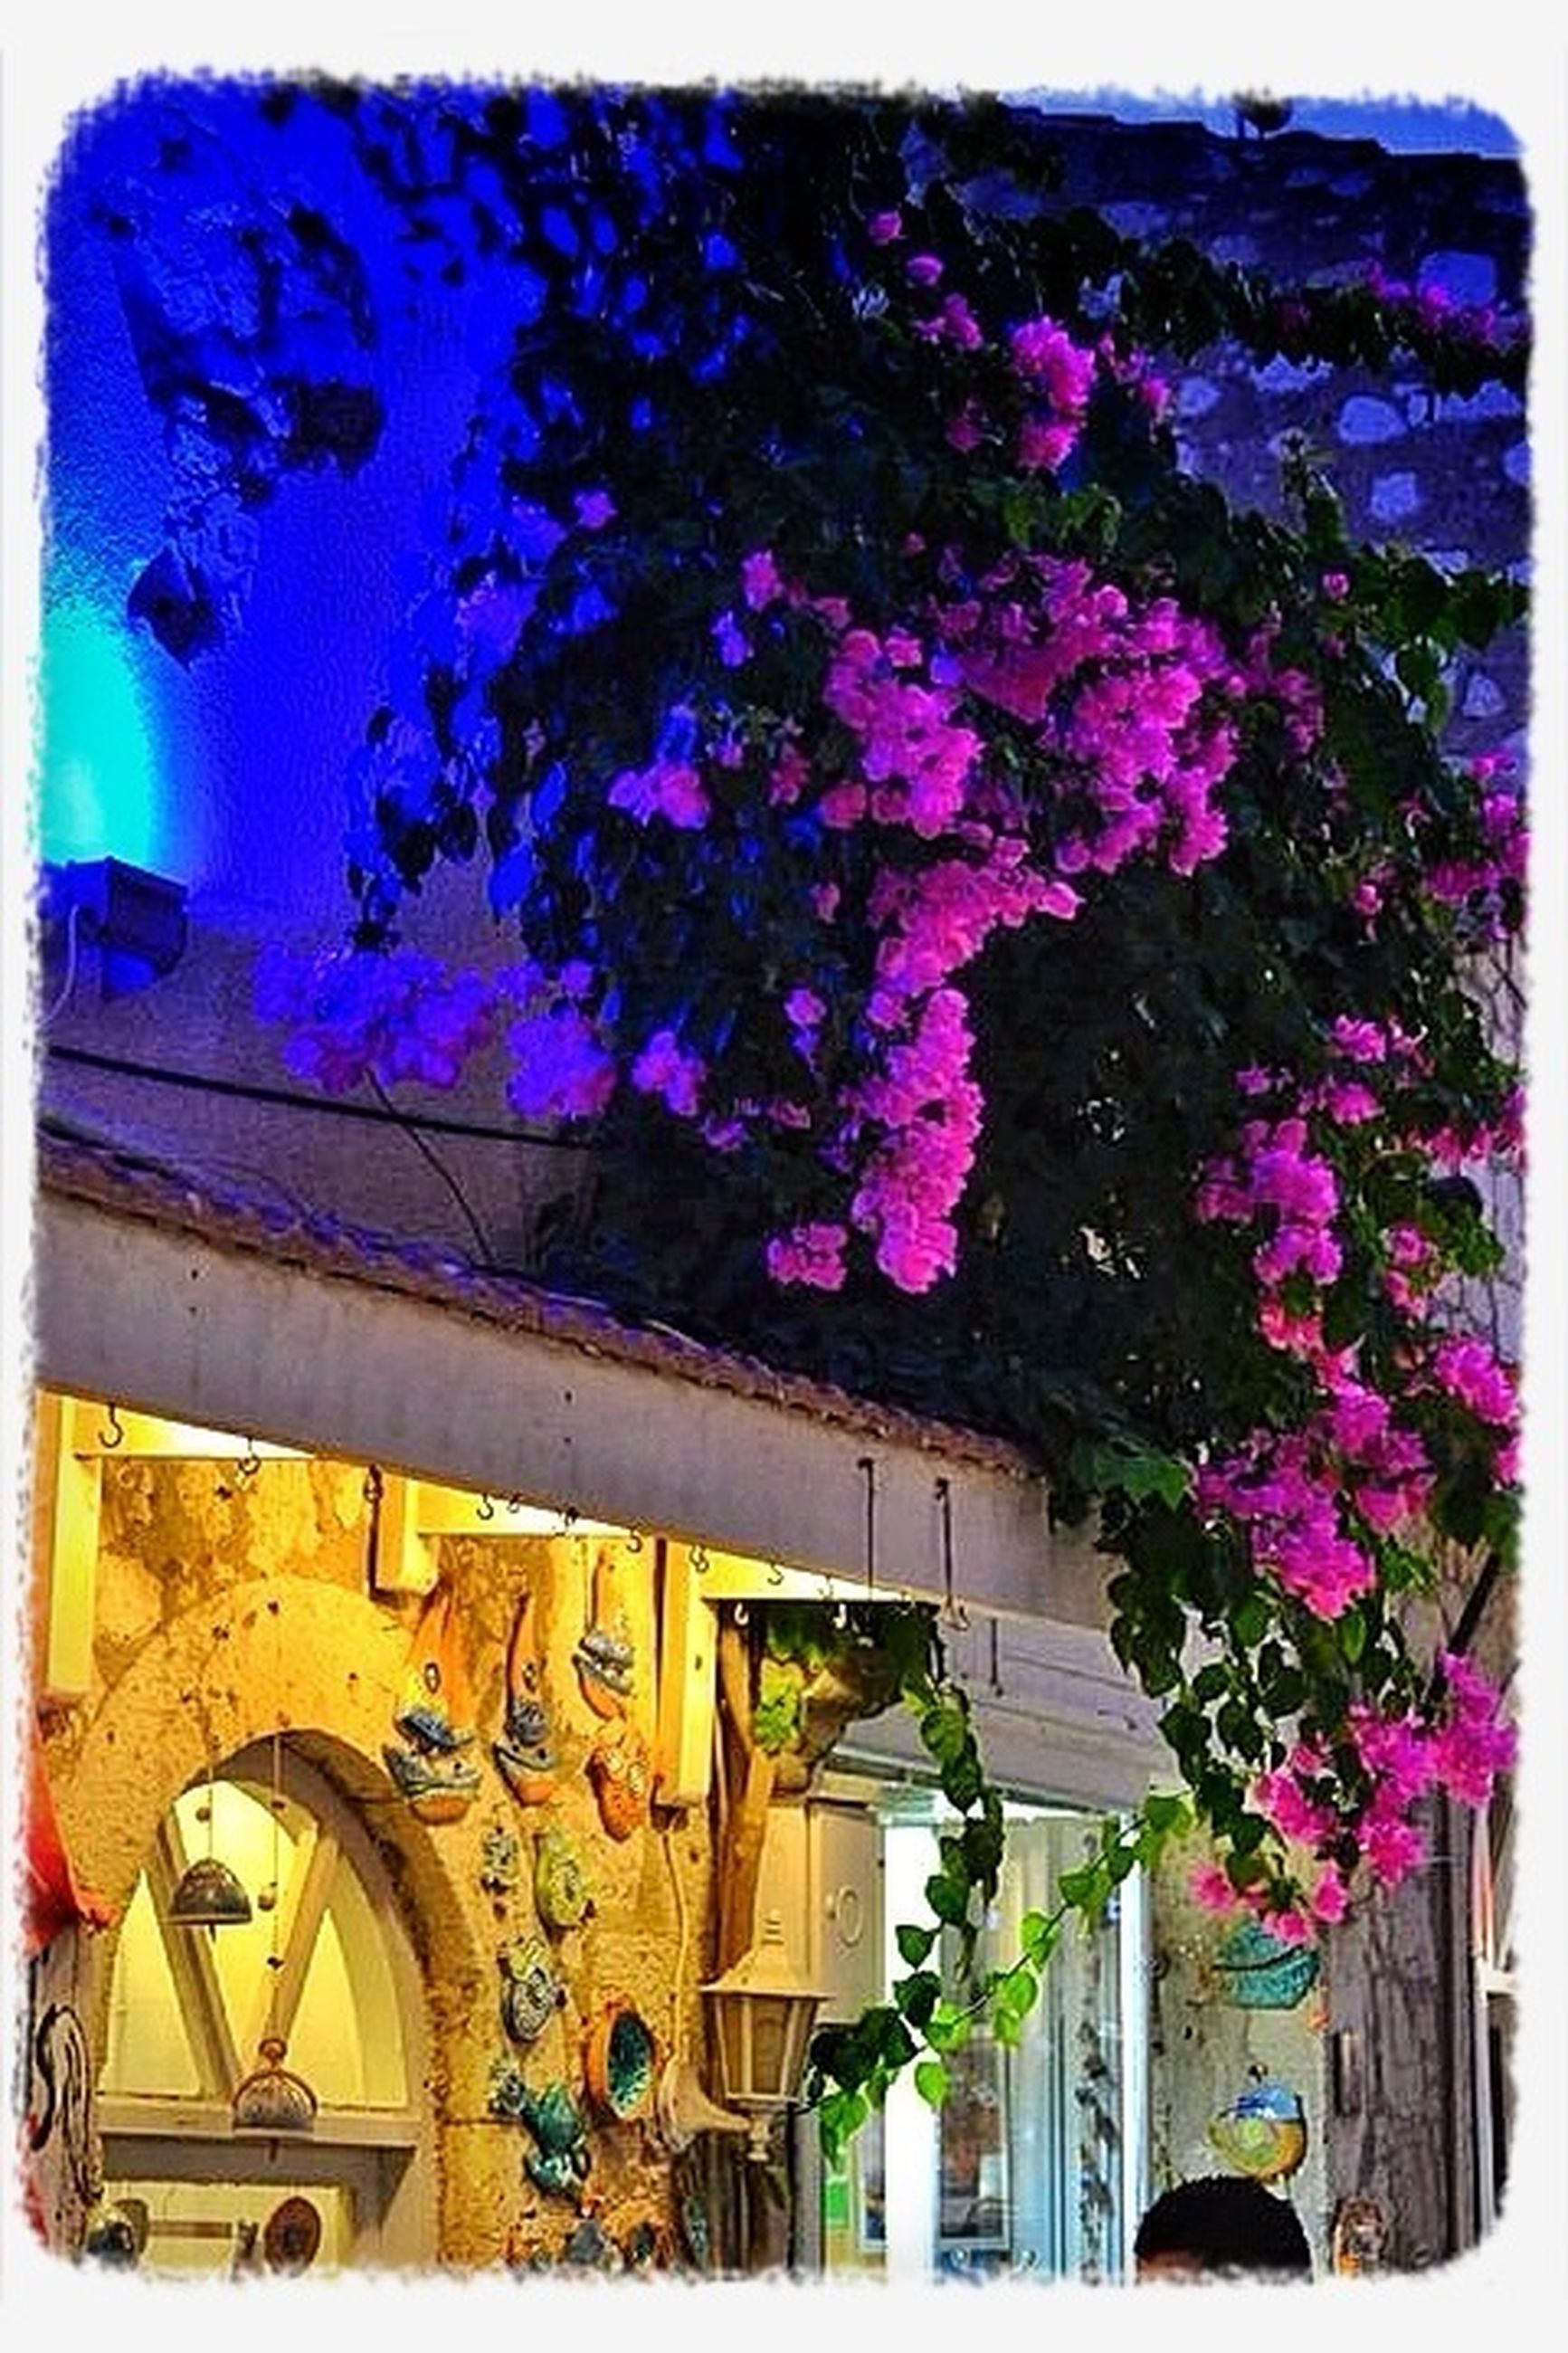 transfer print, auto post production filter, building exterior, built structure, architecture, flower, wall - building feature, house, multi colored, potted plant, art, art and craft, outdoors, wall, plant, day, no people, window, creativity, decoration